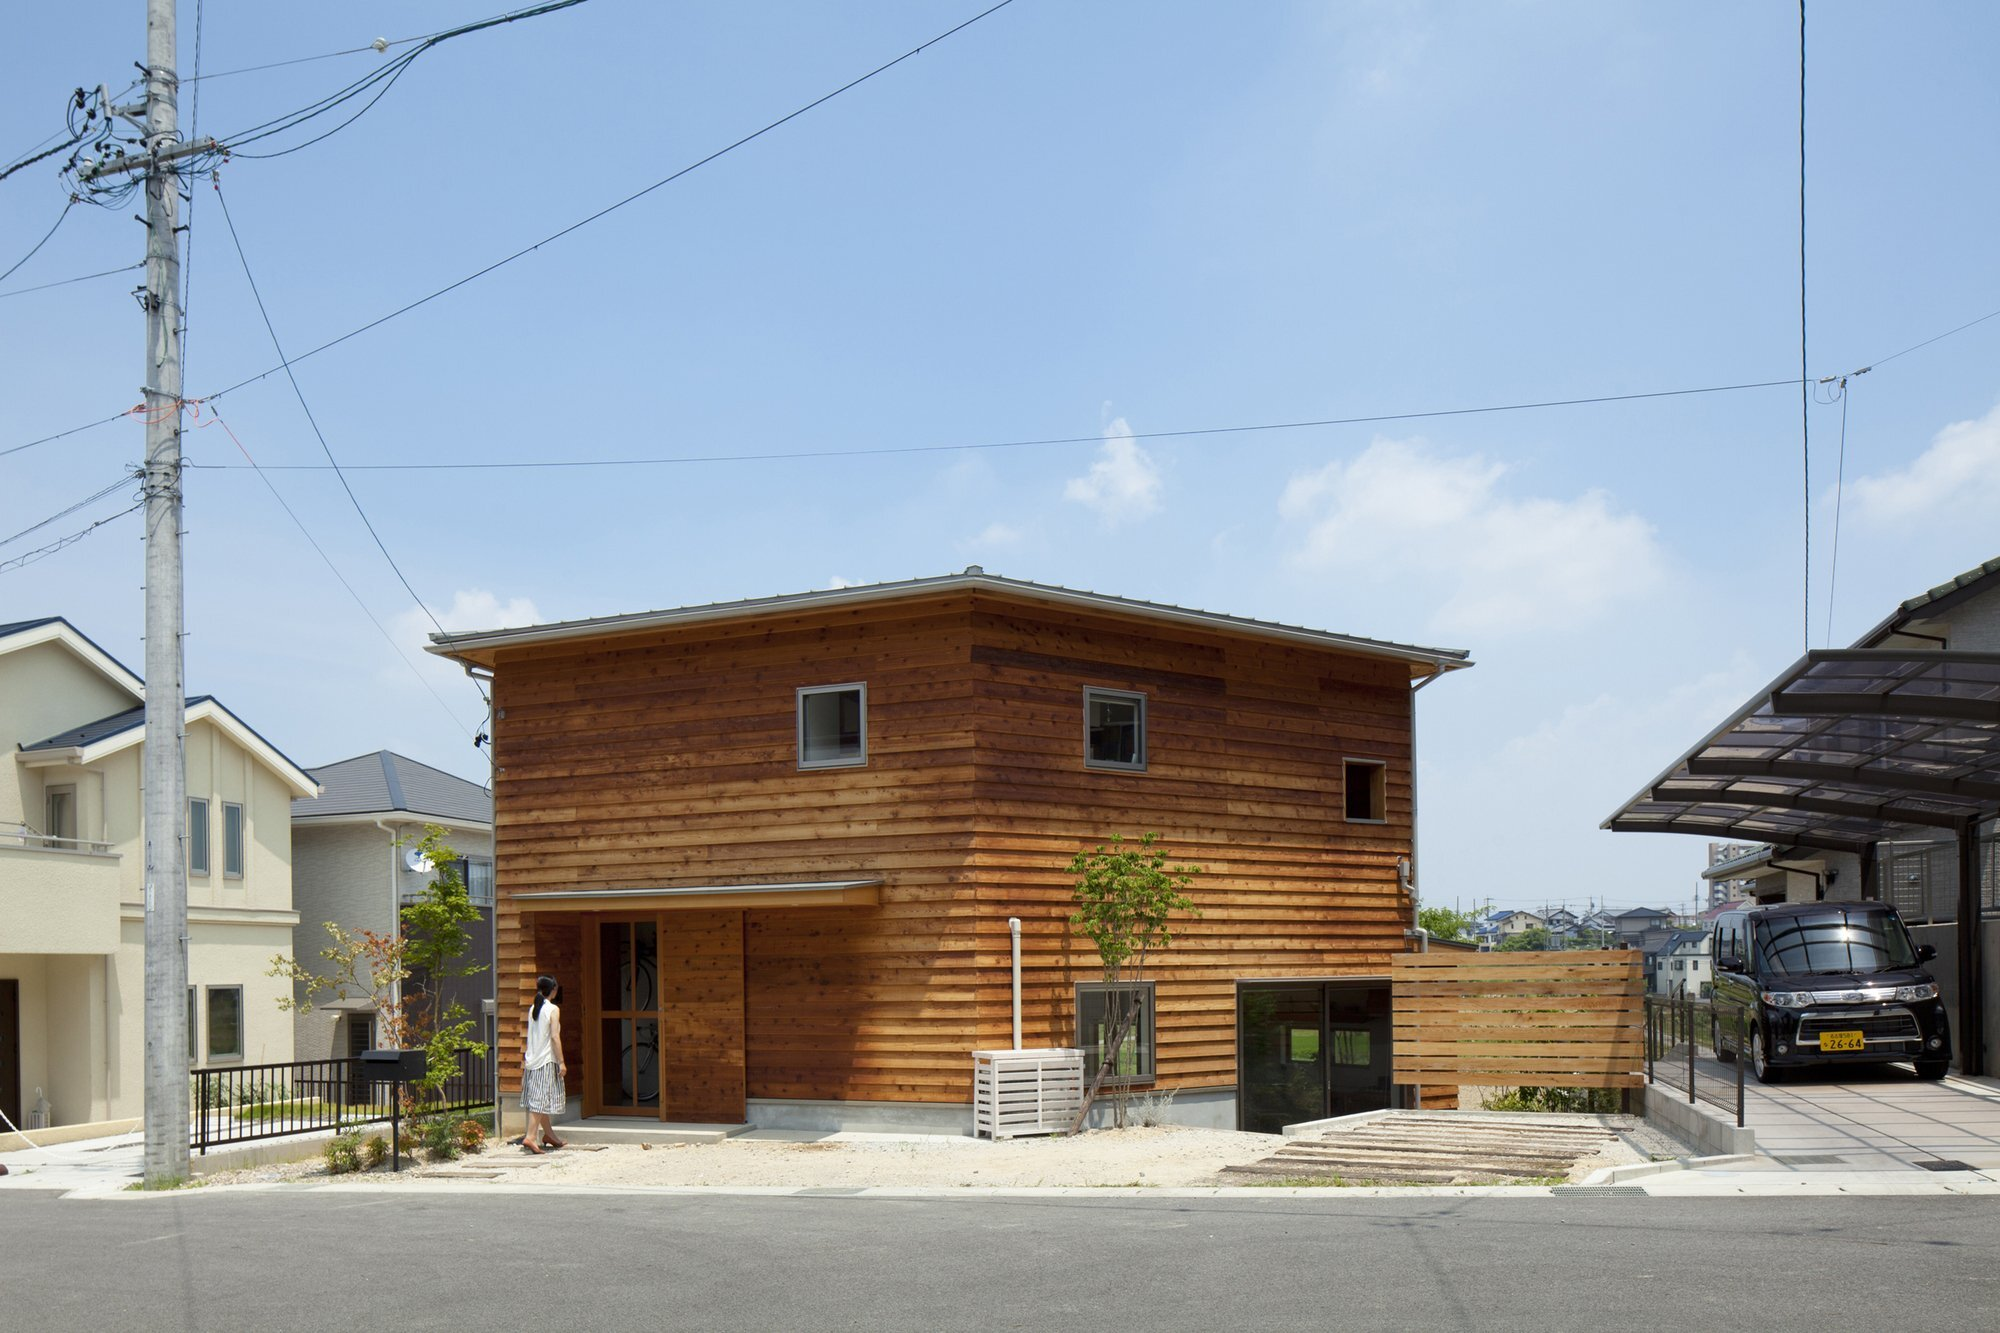 The Frontier House - Small Japanese House - Mamiya Shinichi Design Studio - Toyoake Japan - Exterior - Humble Homes